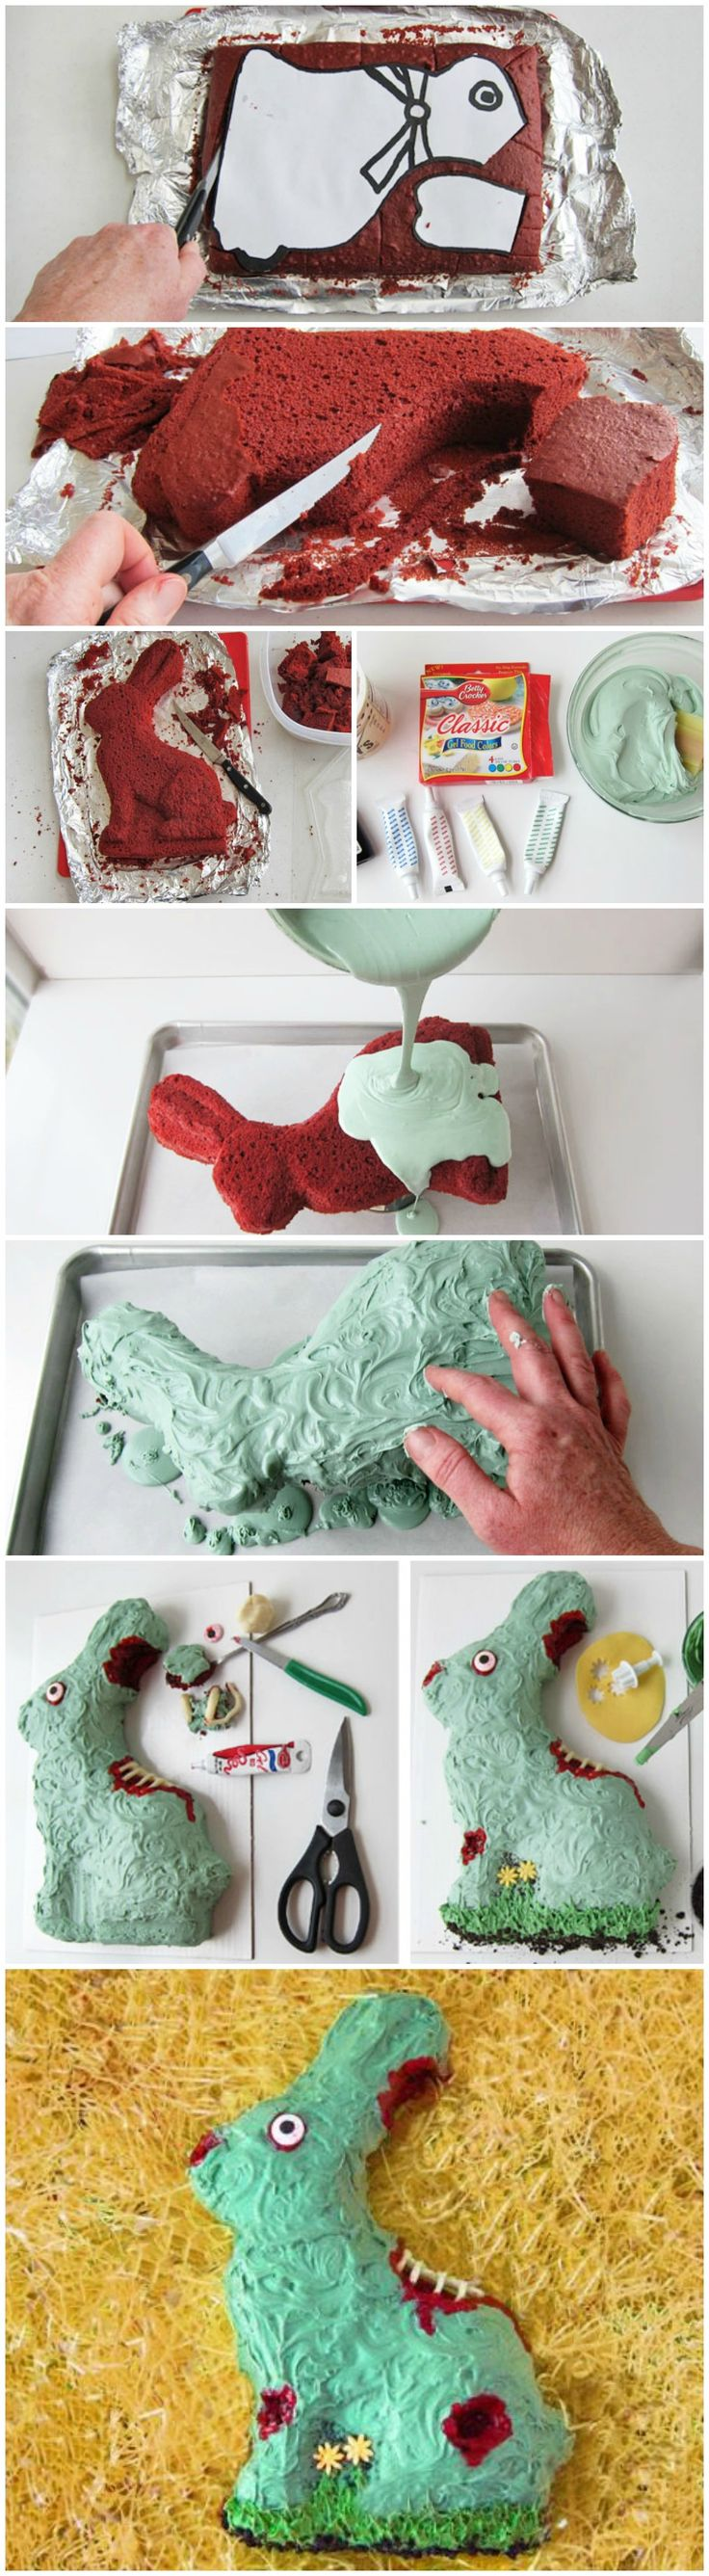 Zombie Bunny Easter Cake